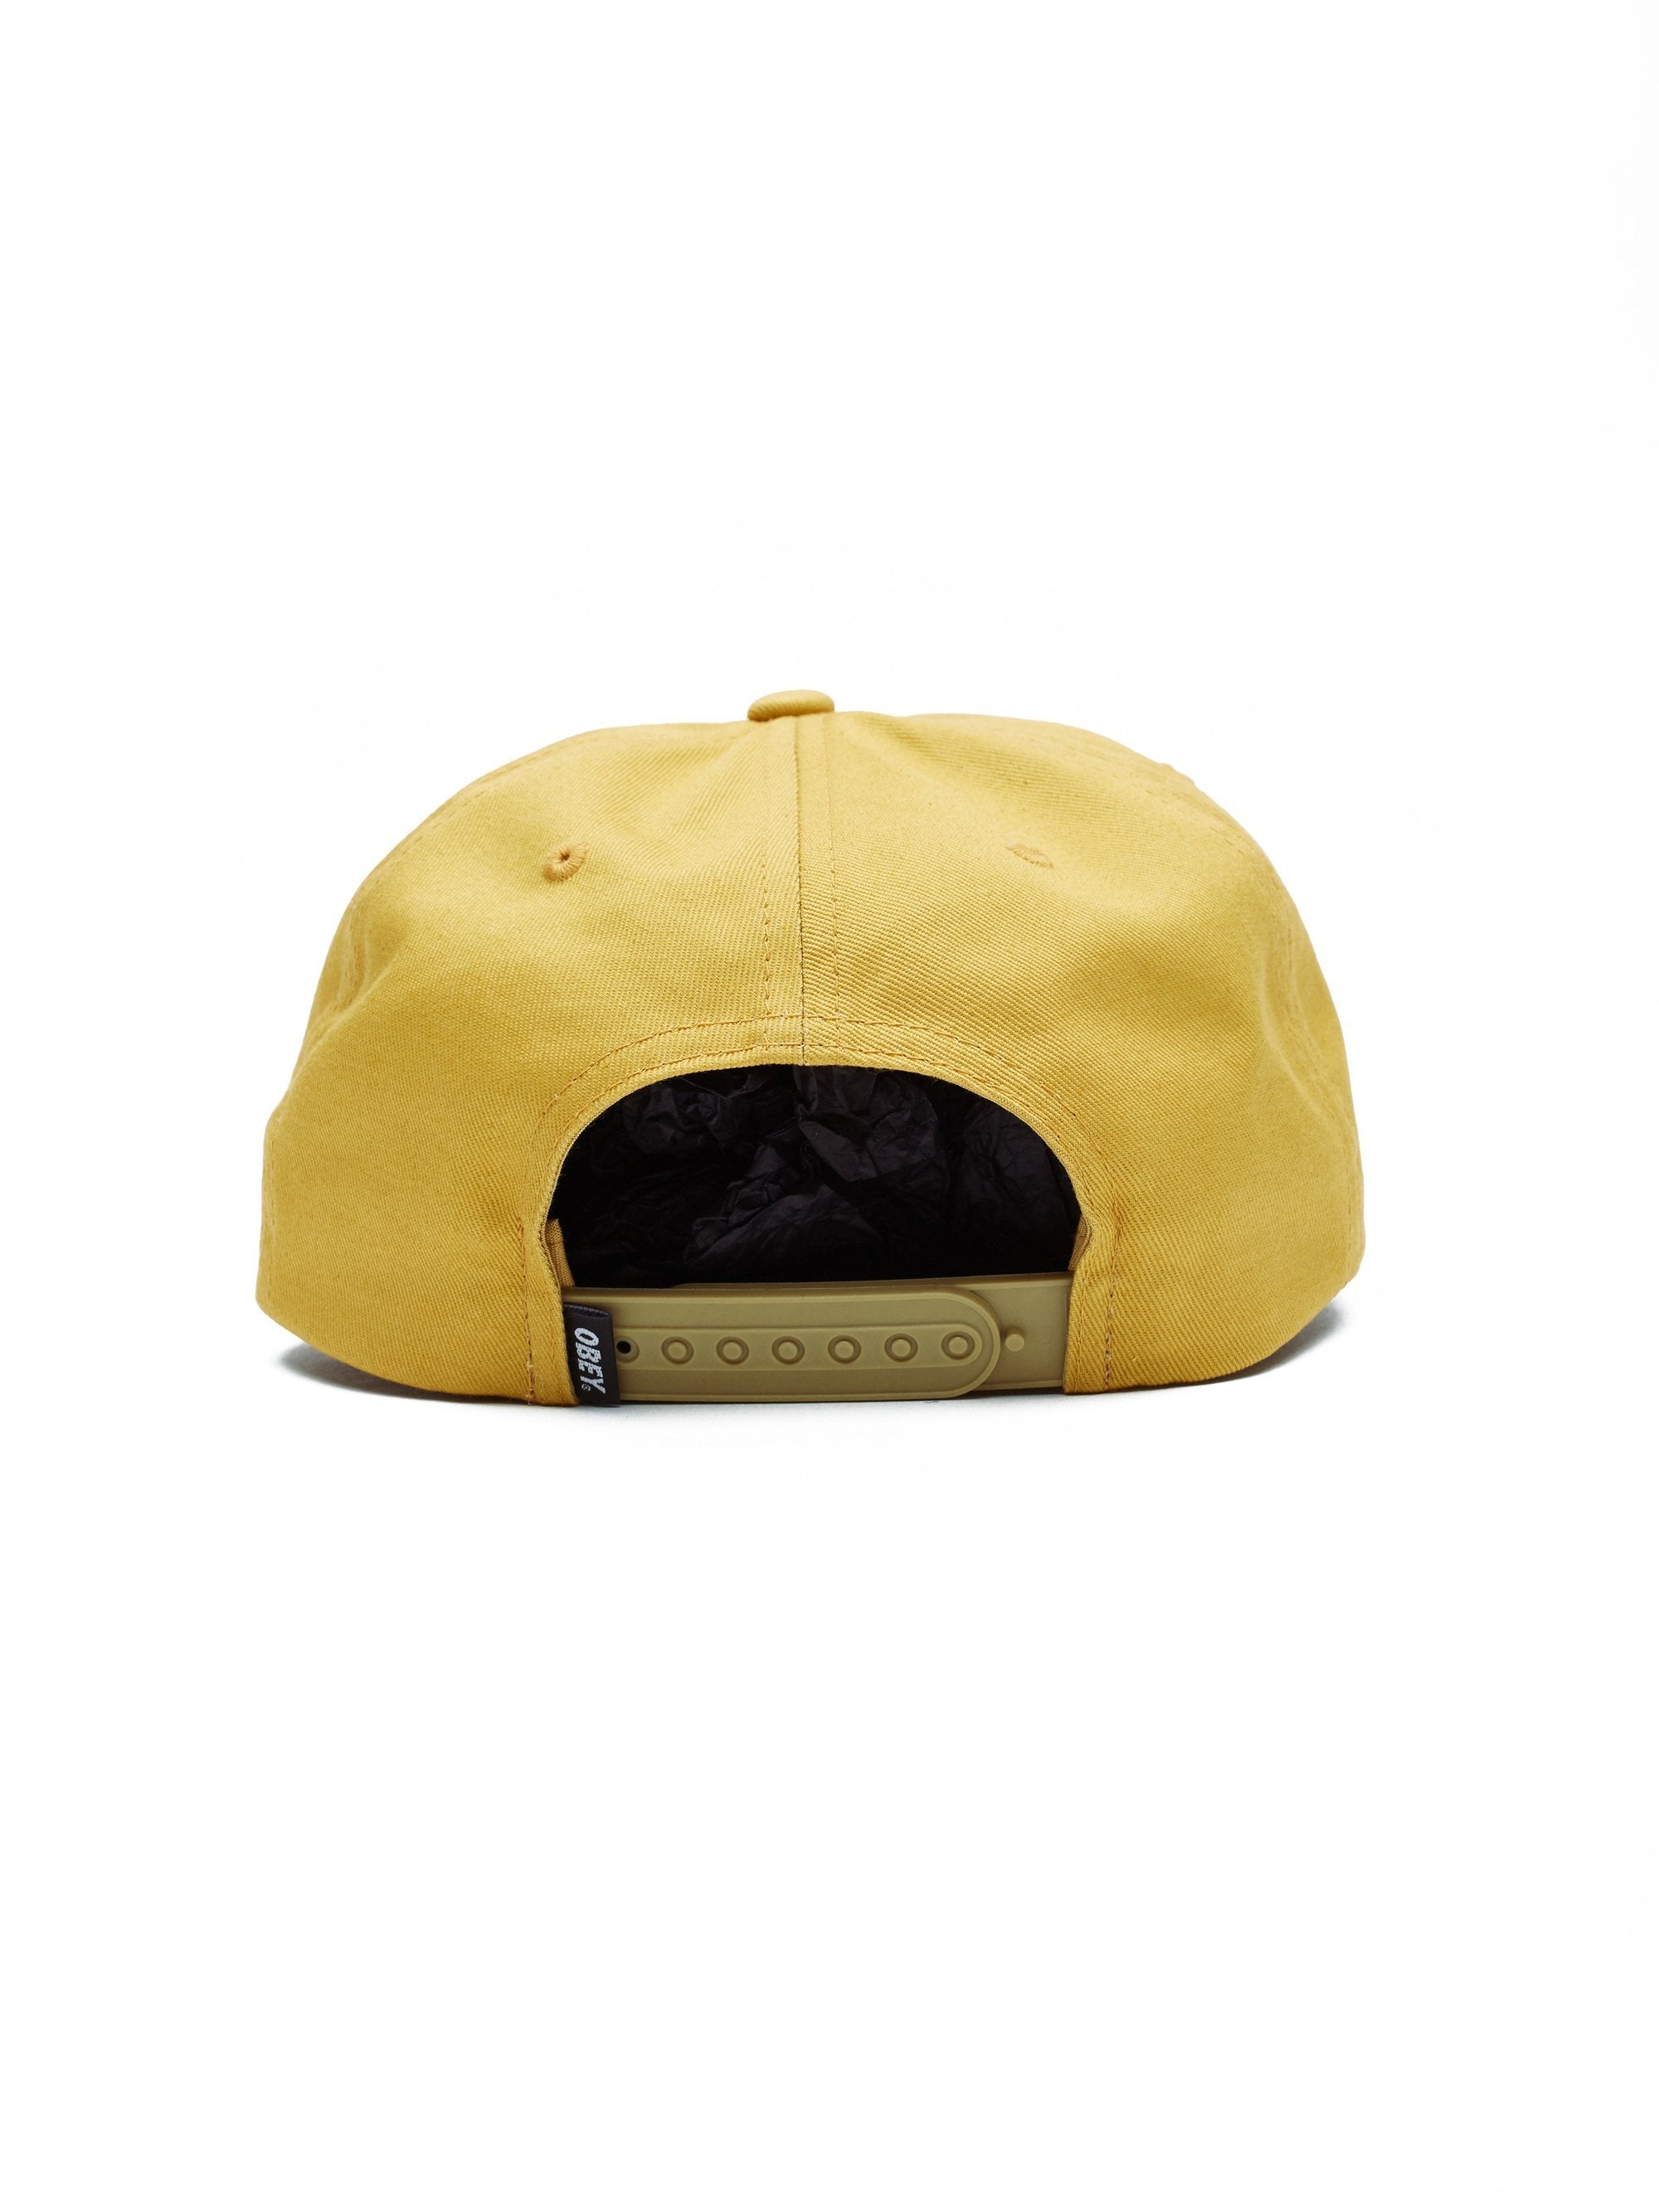 OBEY HATS ROTATION SNAPBACK - GOLD